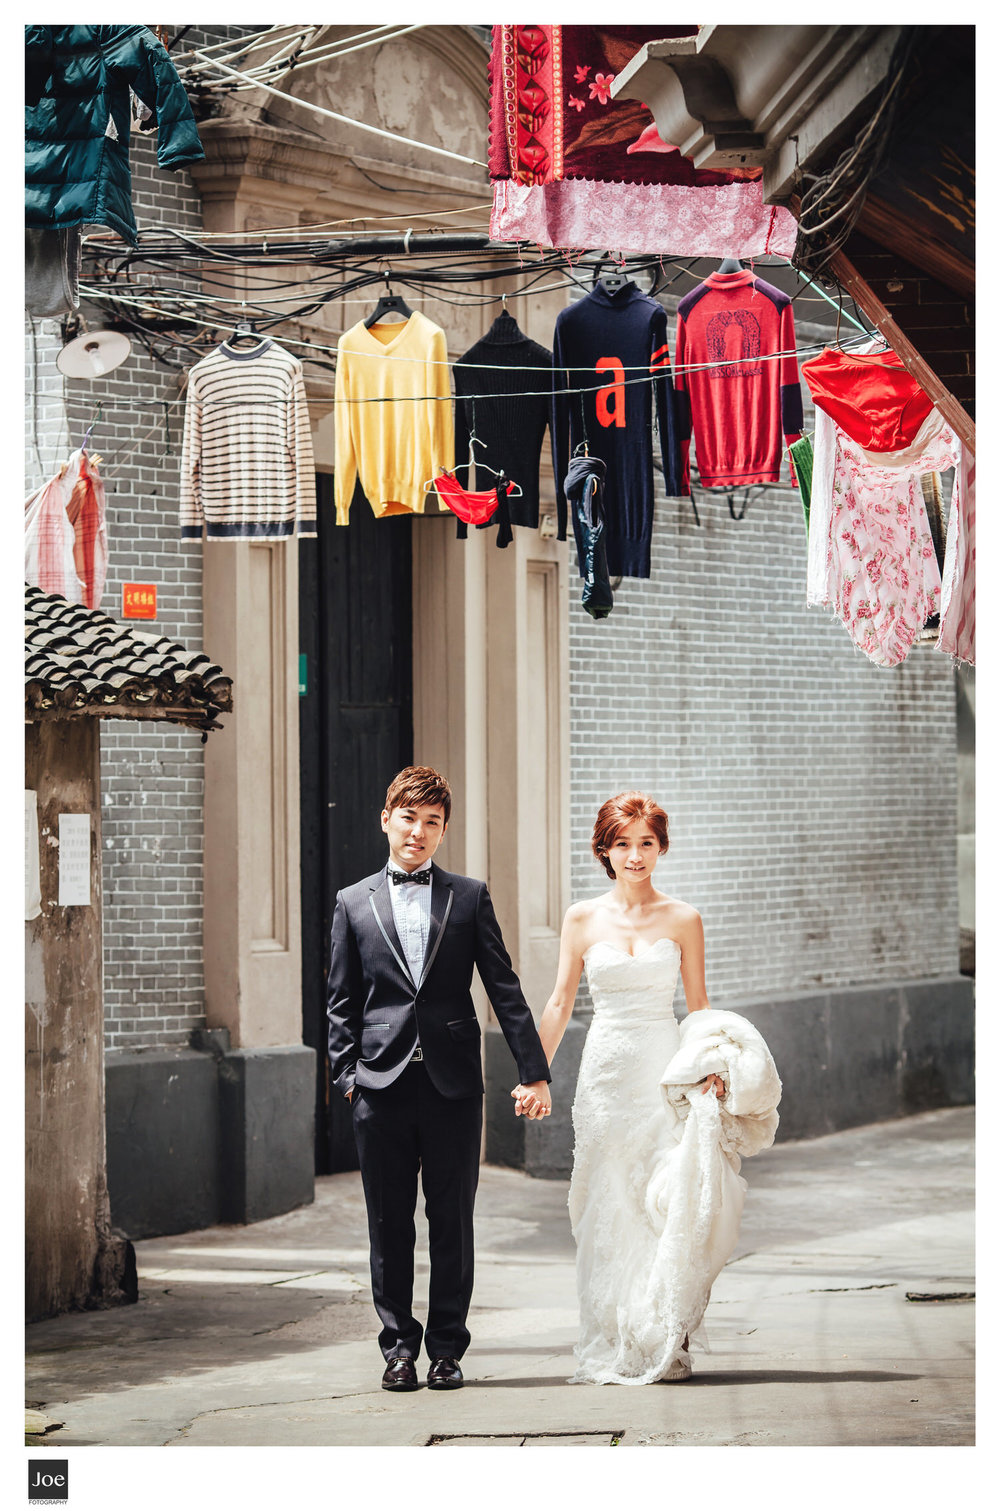 shanghai-pre-wedding-photography-05-ebby-calvin-joe-fotography.jpg